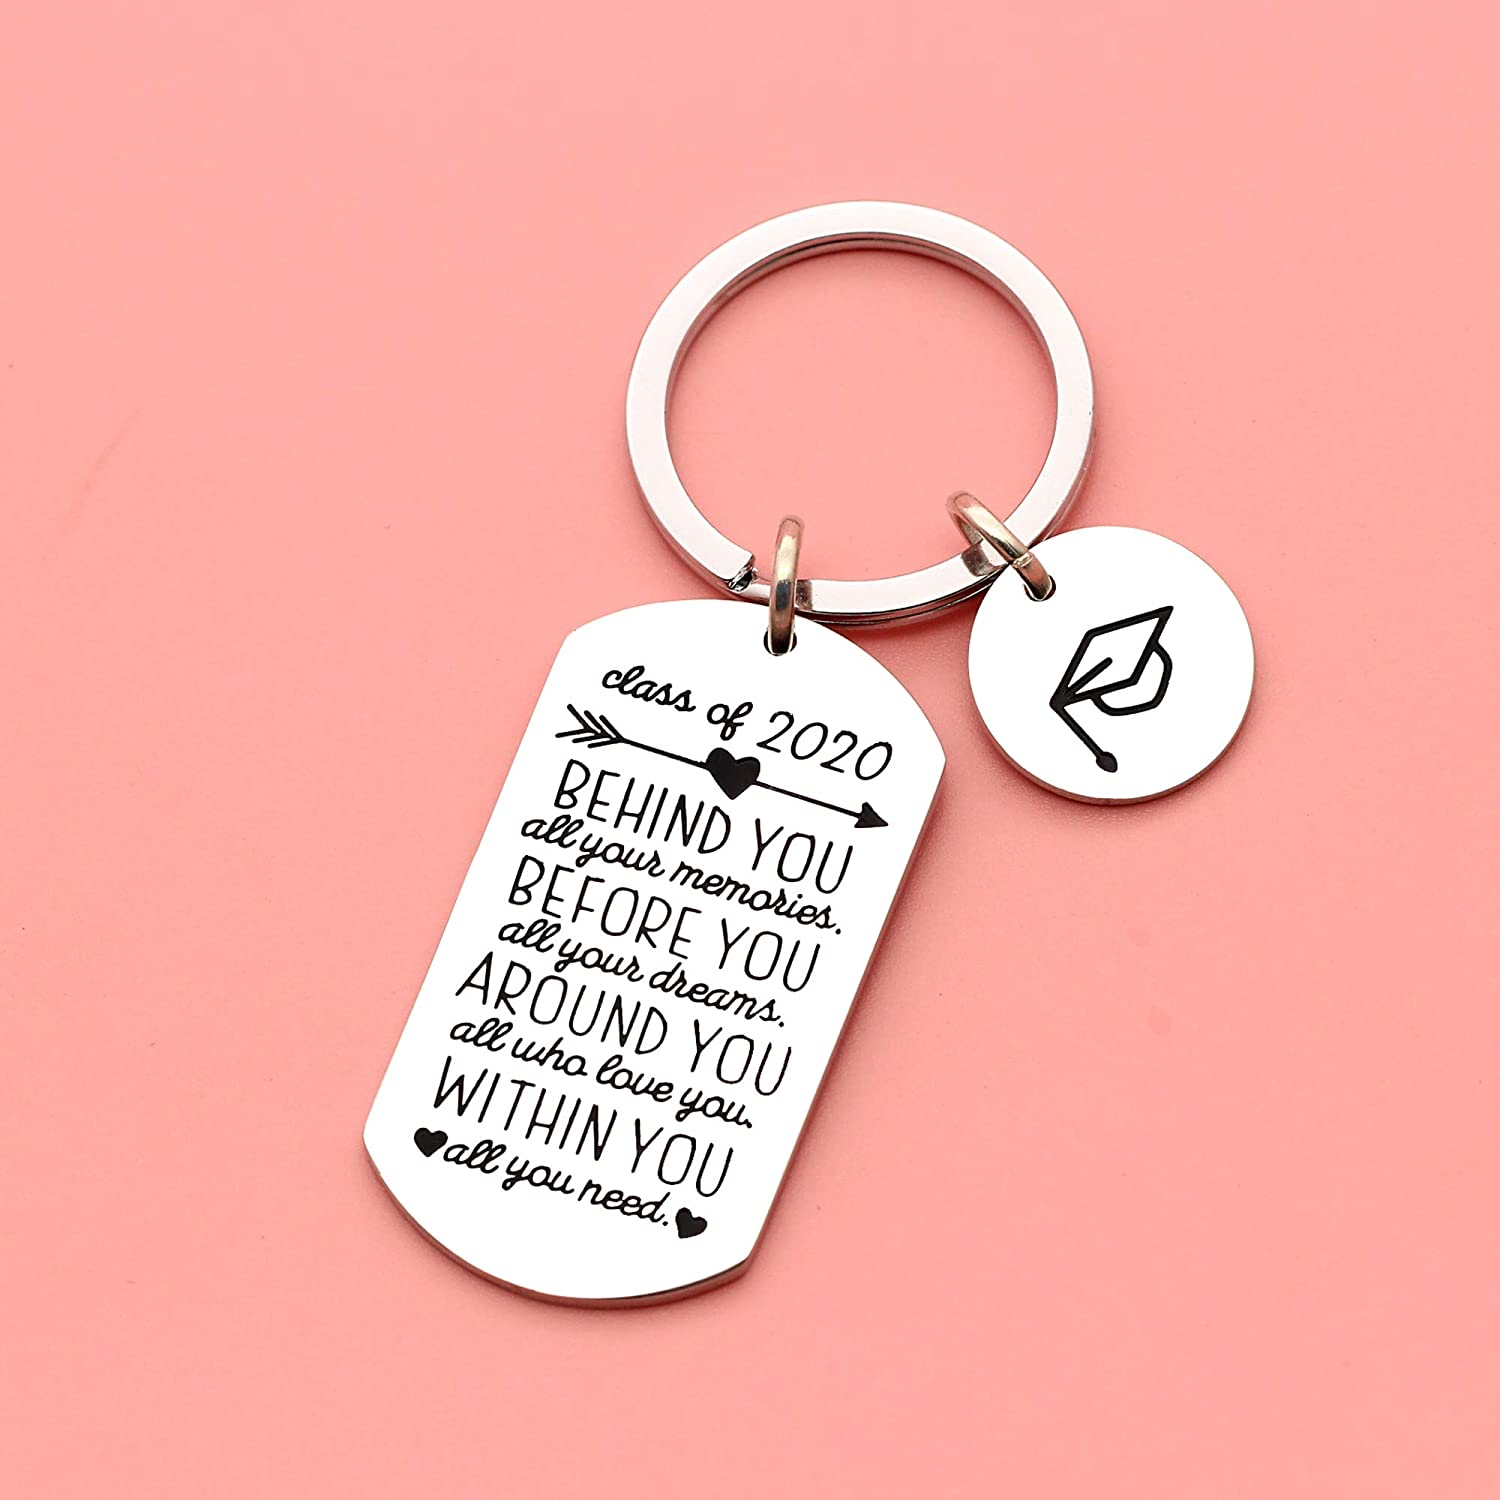 Trencher Cap Pendant Maxforever Inspirational Keyring Graduation Gifts Key Ring for Class 2020 Her Him Daughter Son Best Friend College Boys Girls